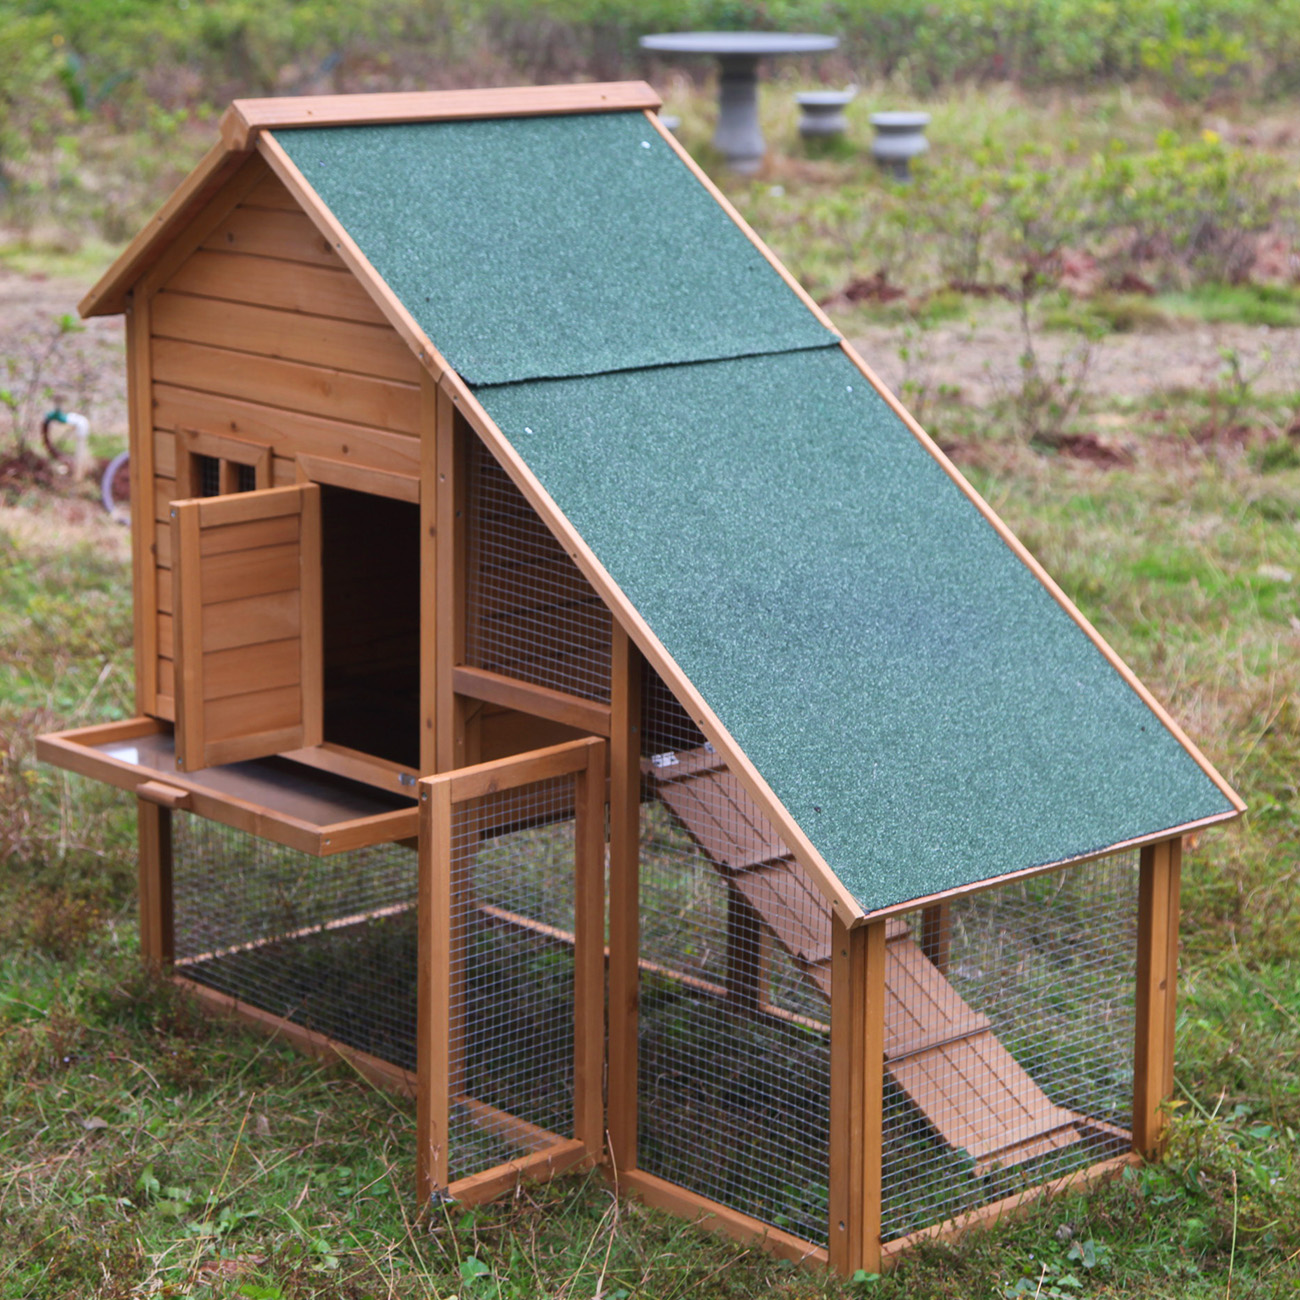 55 portable wooden rabbit hutch deluxe hen house chicken for Portable wooden house